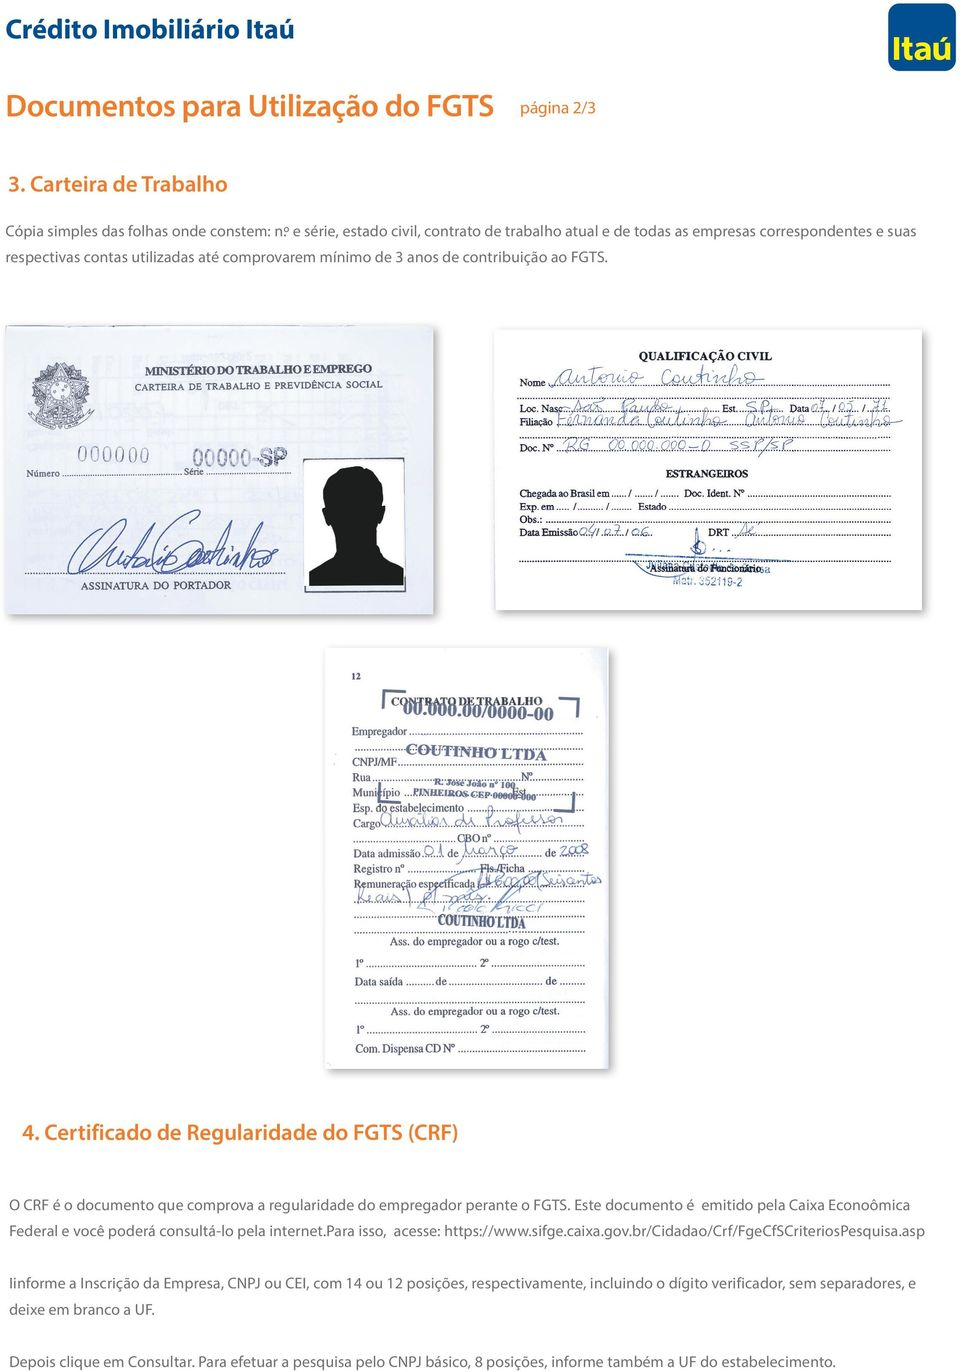 Certificado de Regularidade do FGTS (CRF) O CRF é o documento que comprova a regularidade do empregador perante o FGTS.